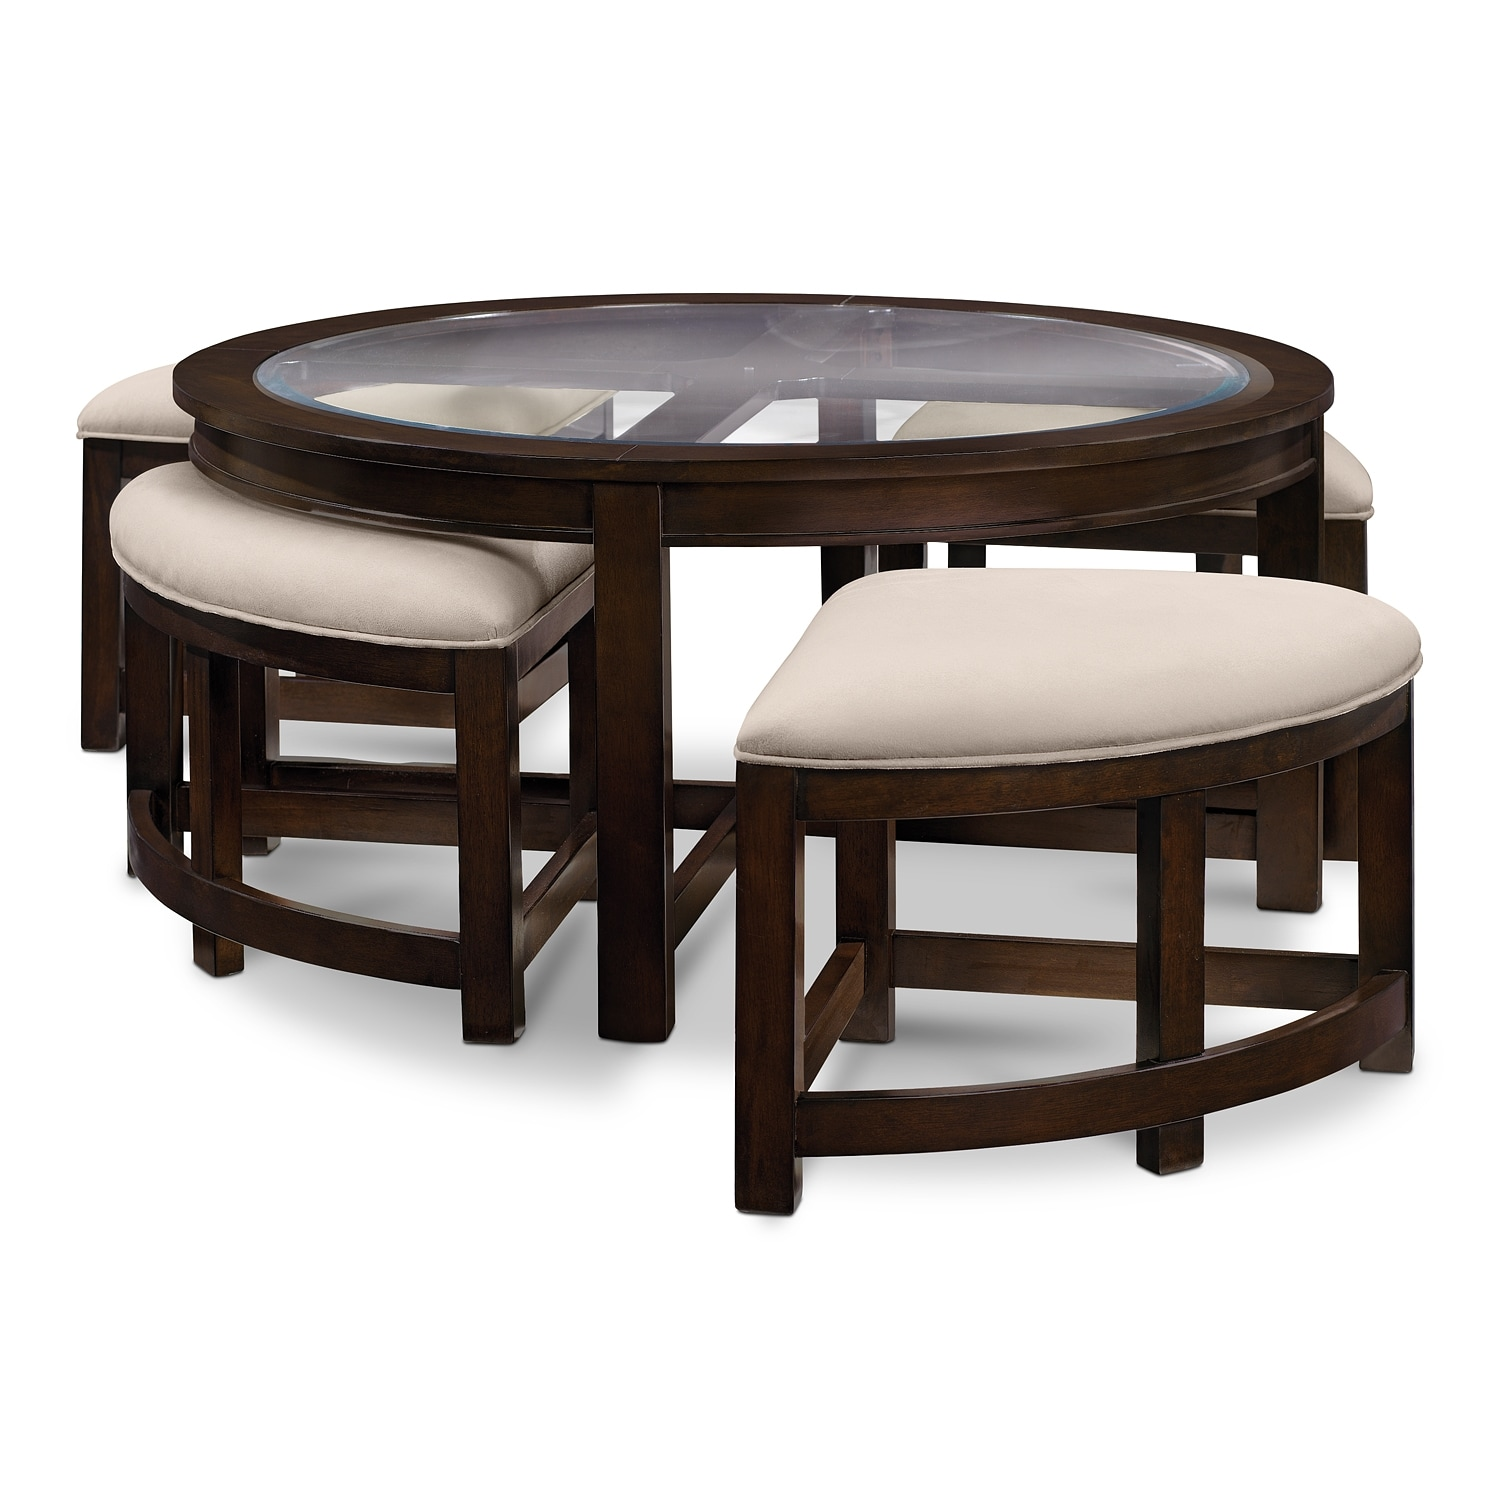 Accent And Occasional Furniture   Four Corners Cocktail Table W/ 4 Benches    Merlot